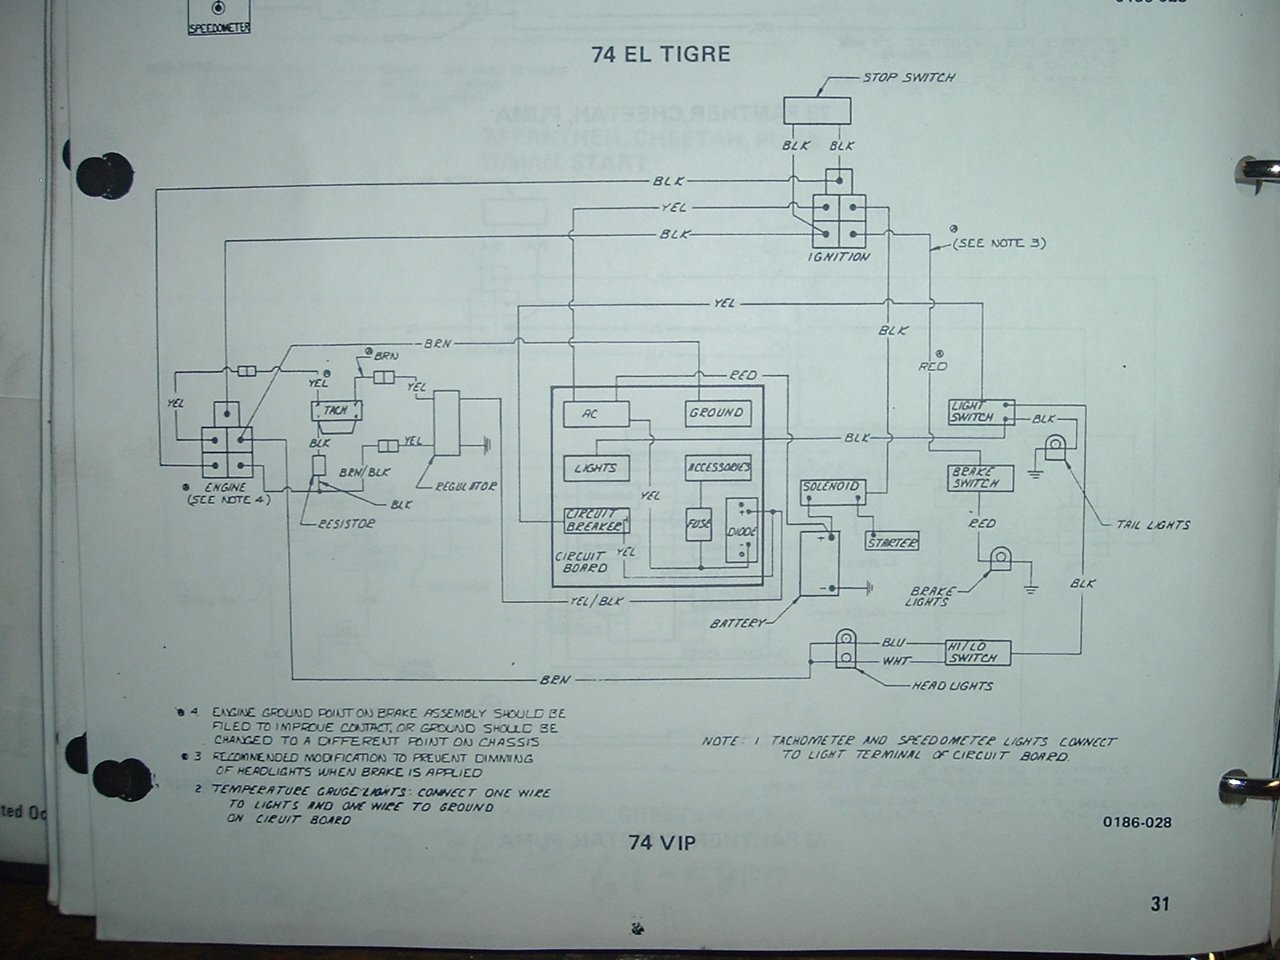 hight resolution of 92 700 wildcat wiring diagram wiring diagram bobcat utv wiring diagram economy wildcat wiring diagram question